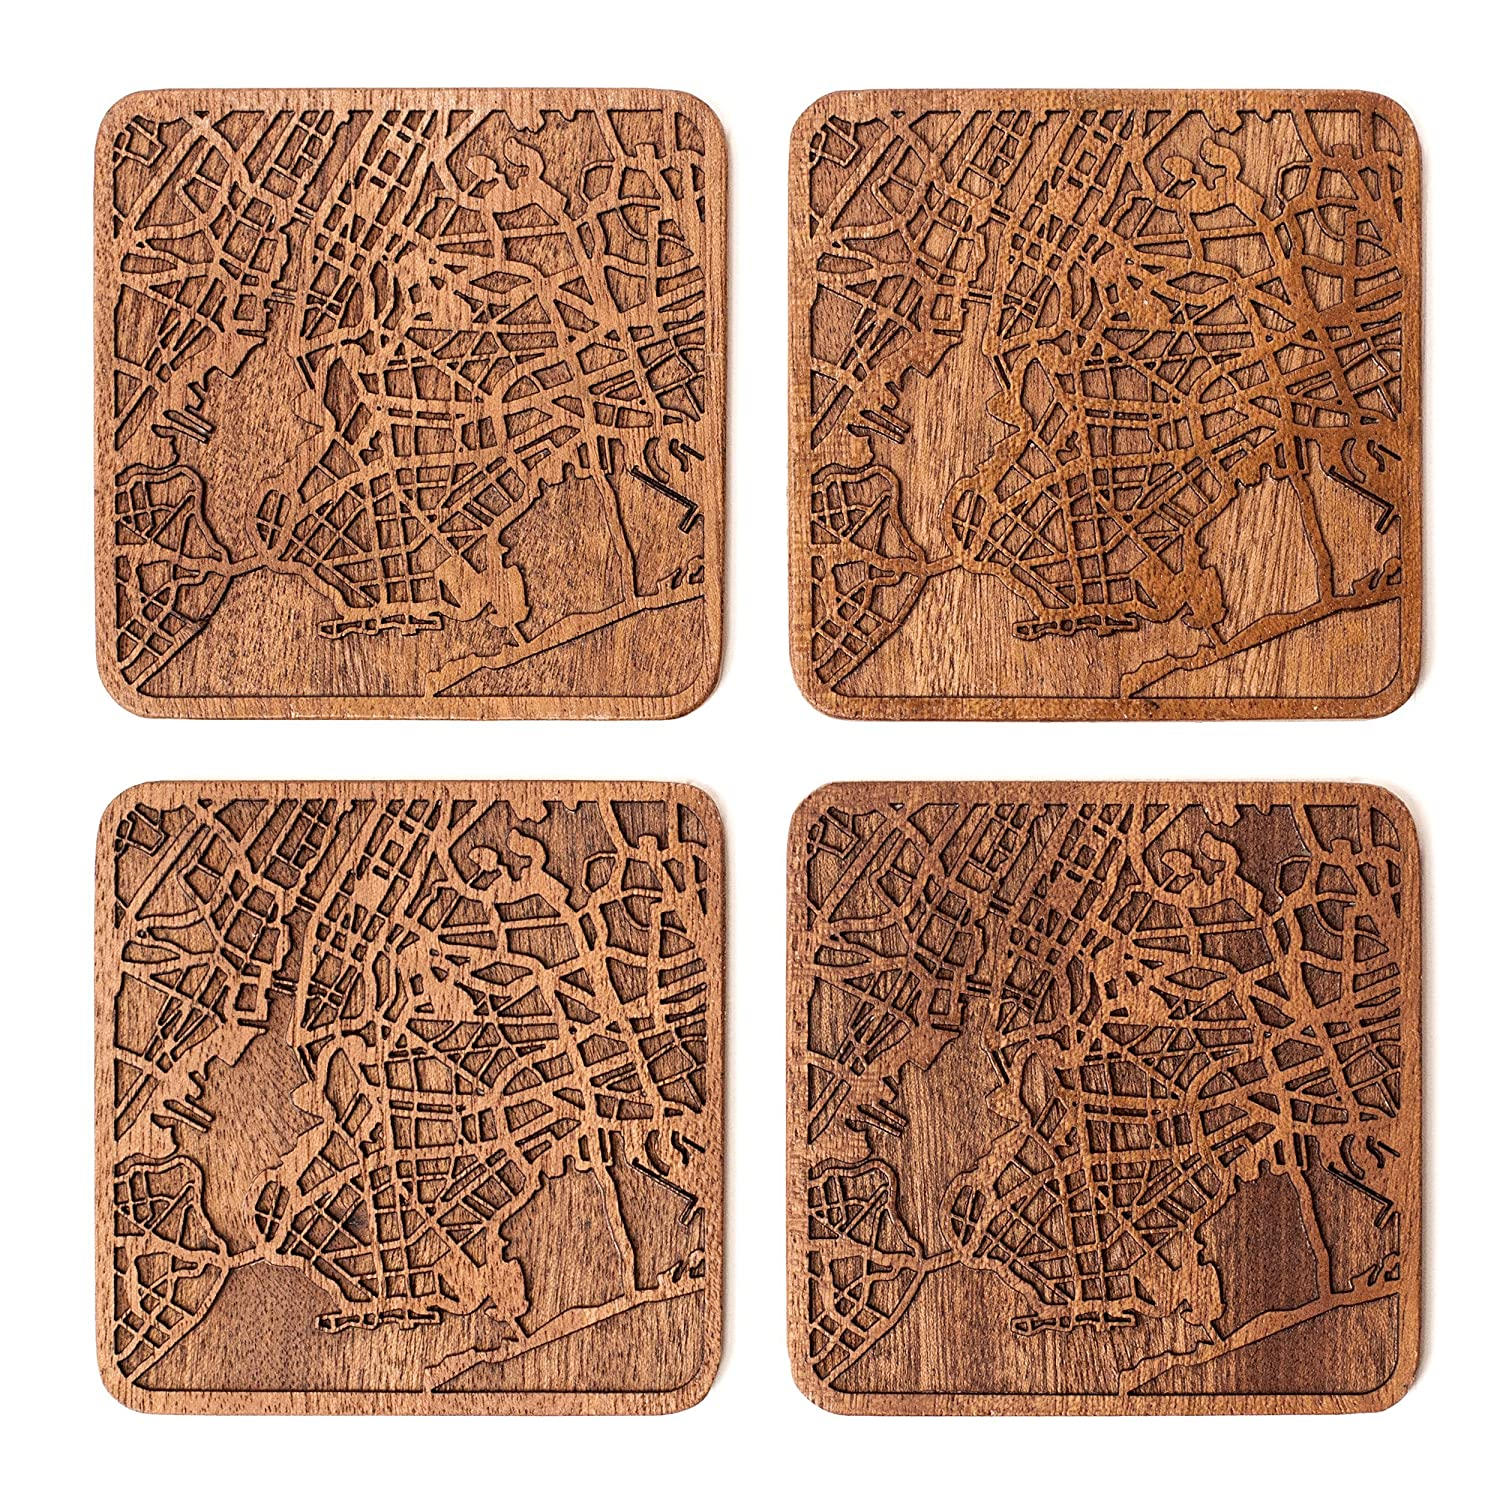 New York Map Coaster by O3 Design Studio, Set Of 4, Sapele Wooden Coaster With City Map, Handmade